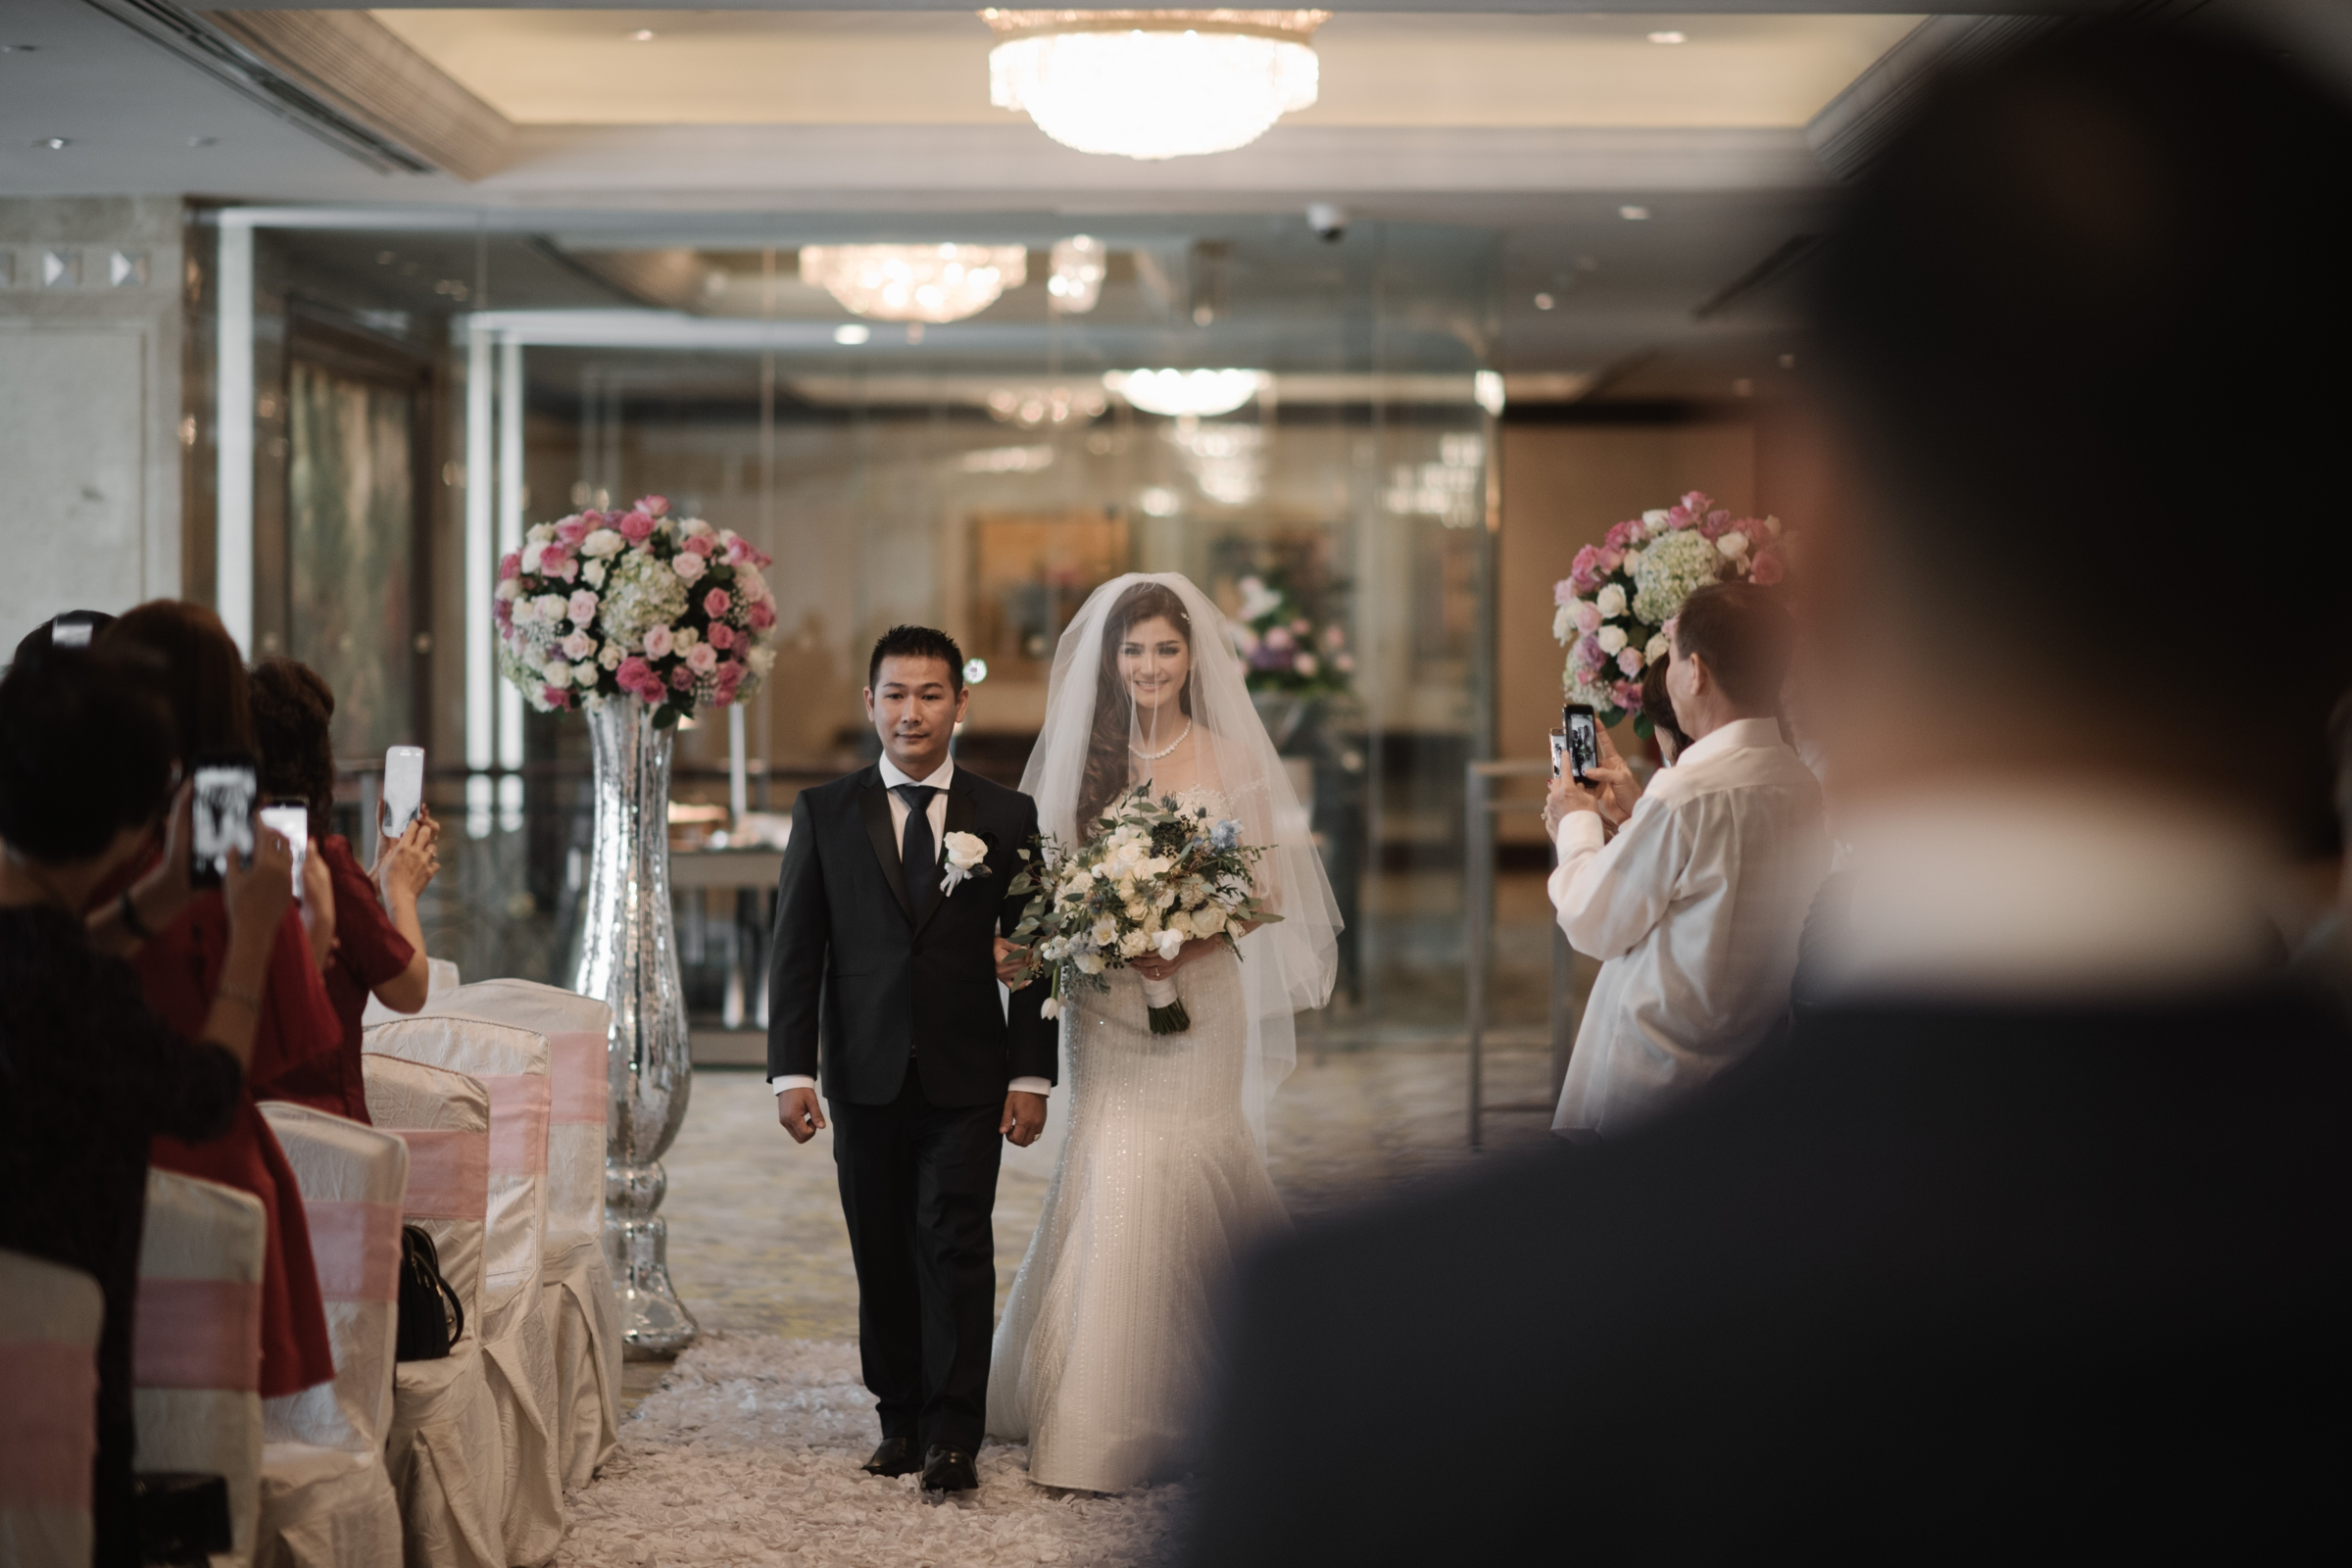 livia-reagan-wedding-raffles-jakarta-pyara-photo-gejoo 31.jpg